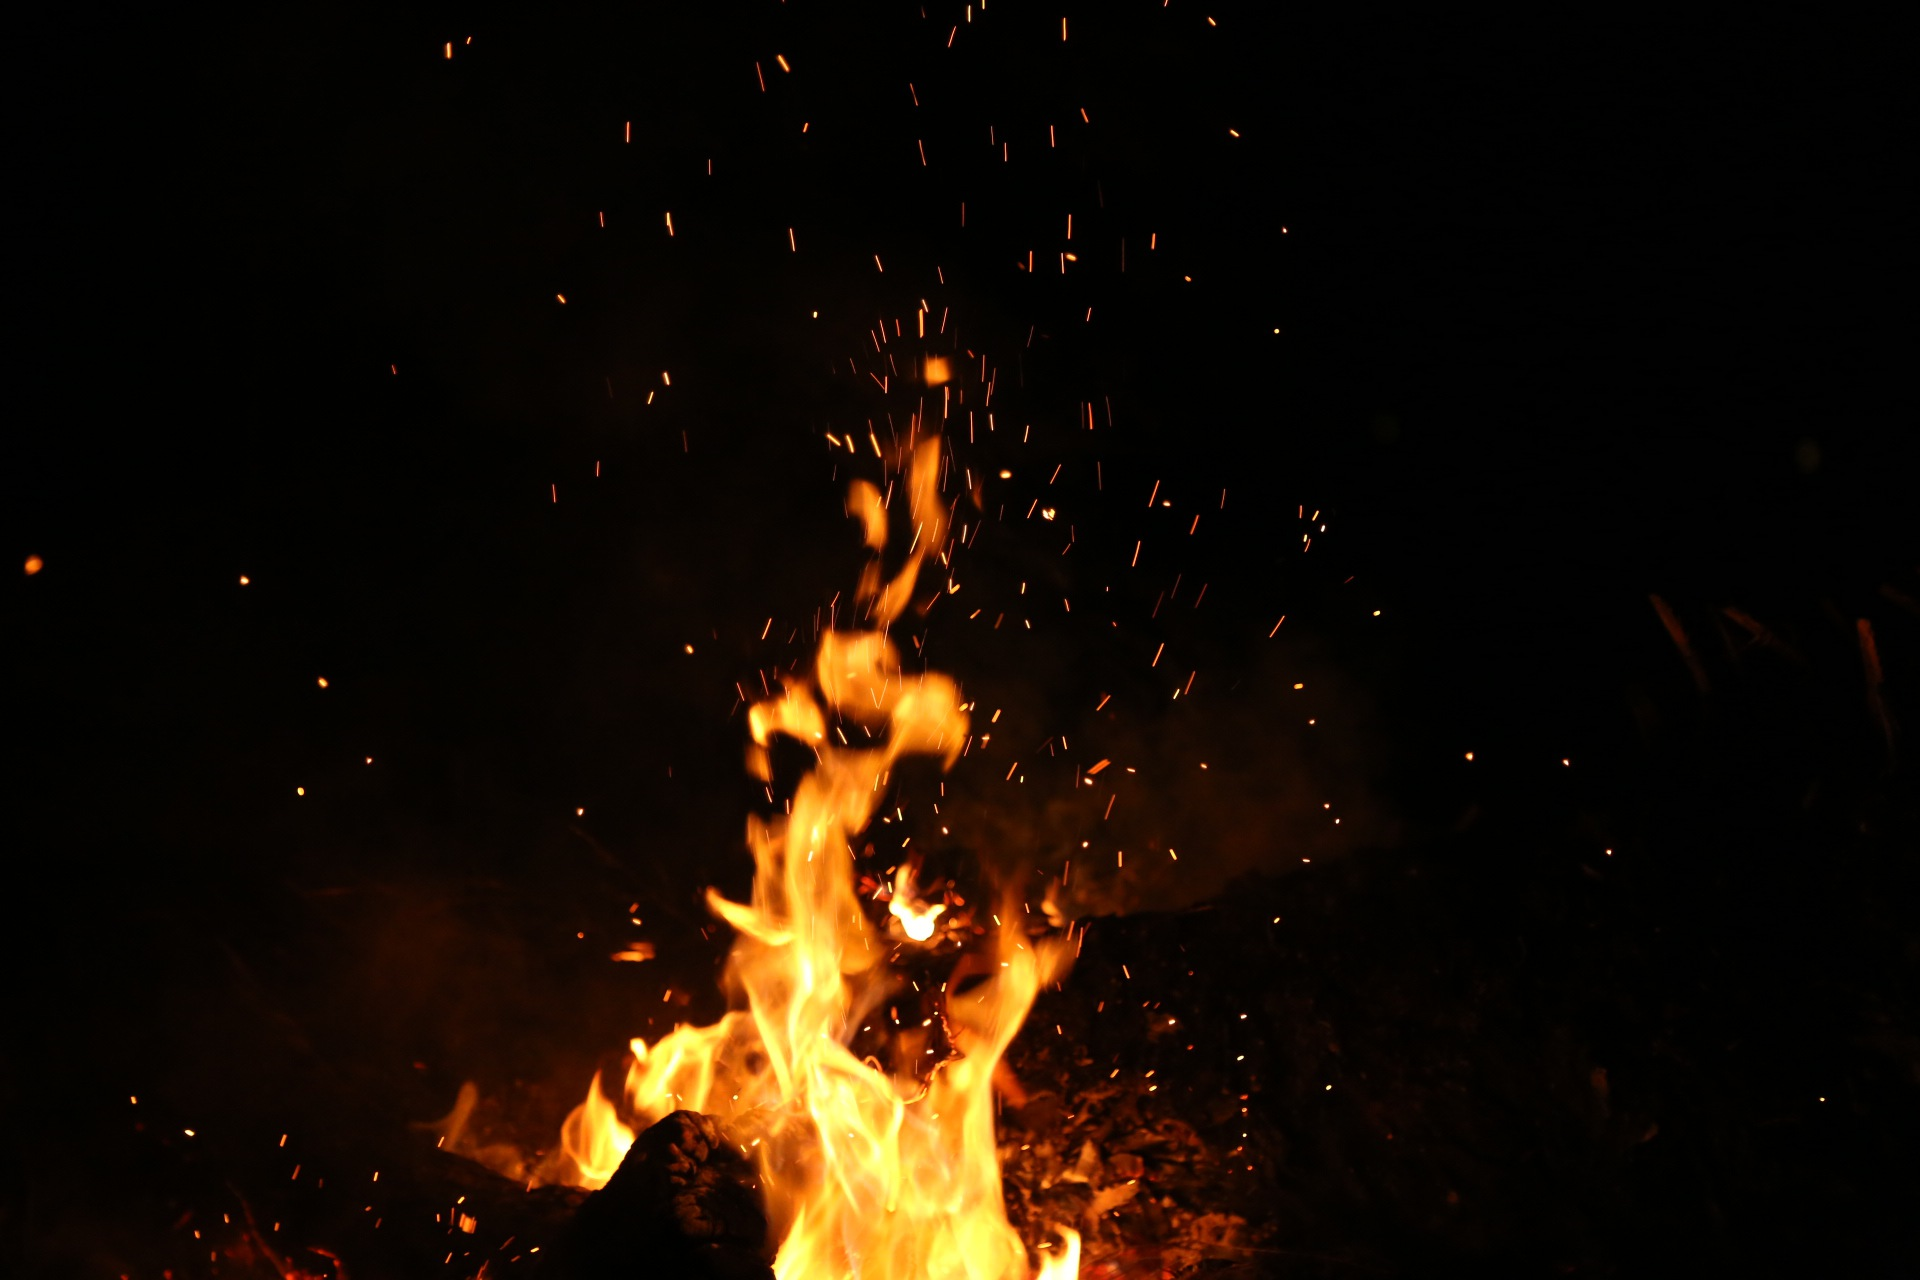 Fire flame photo